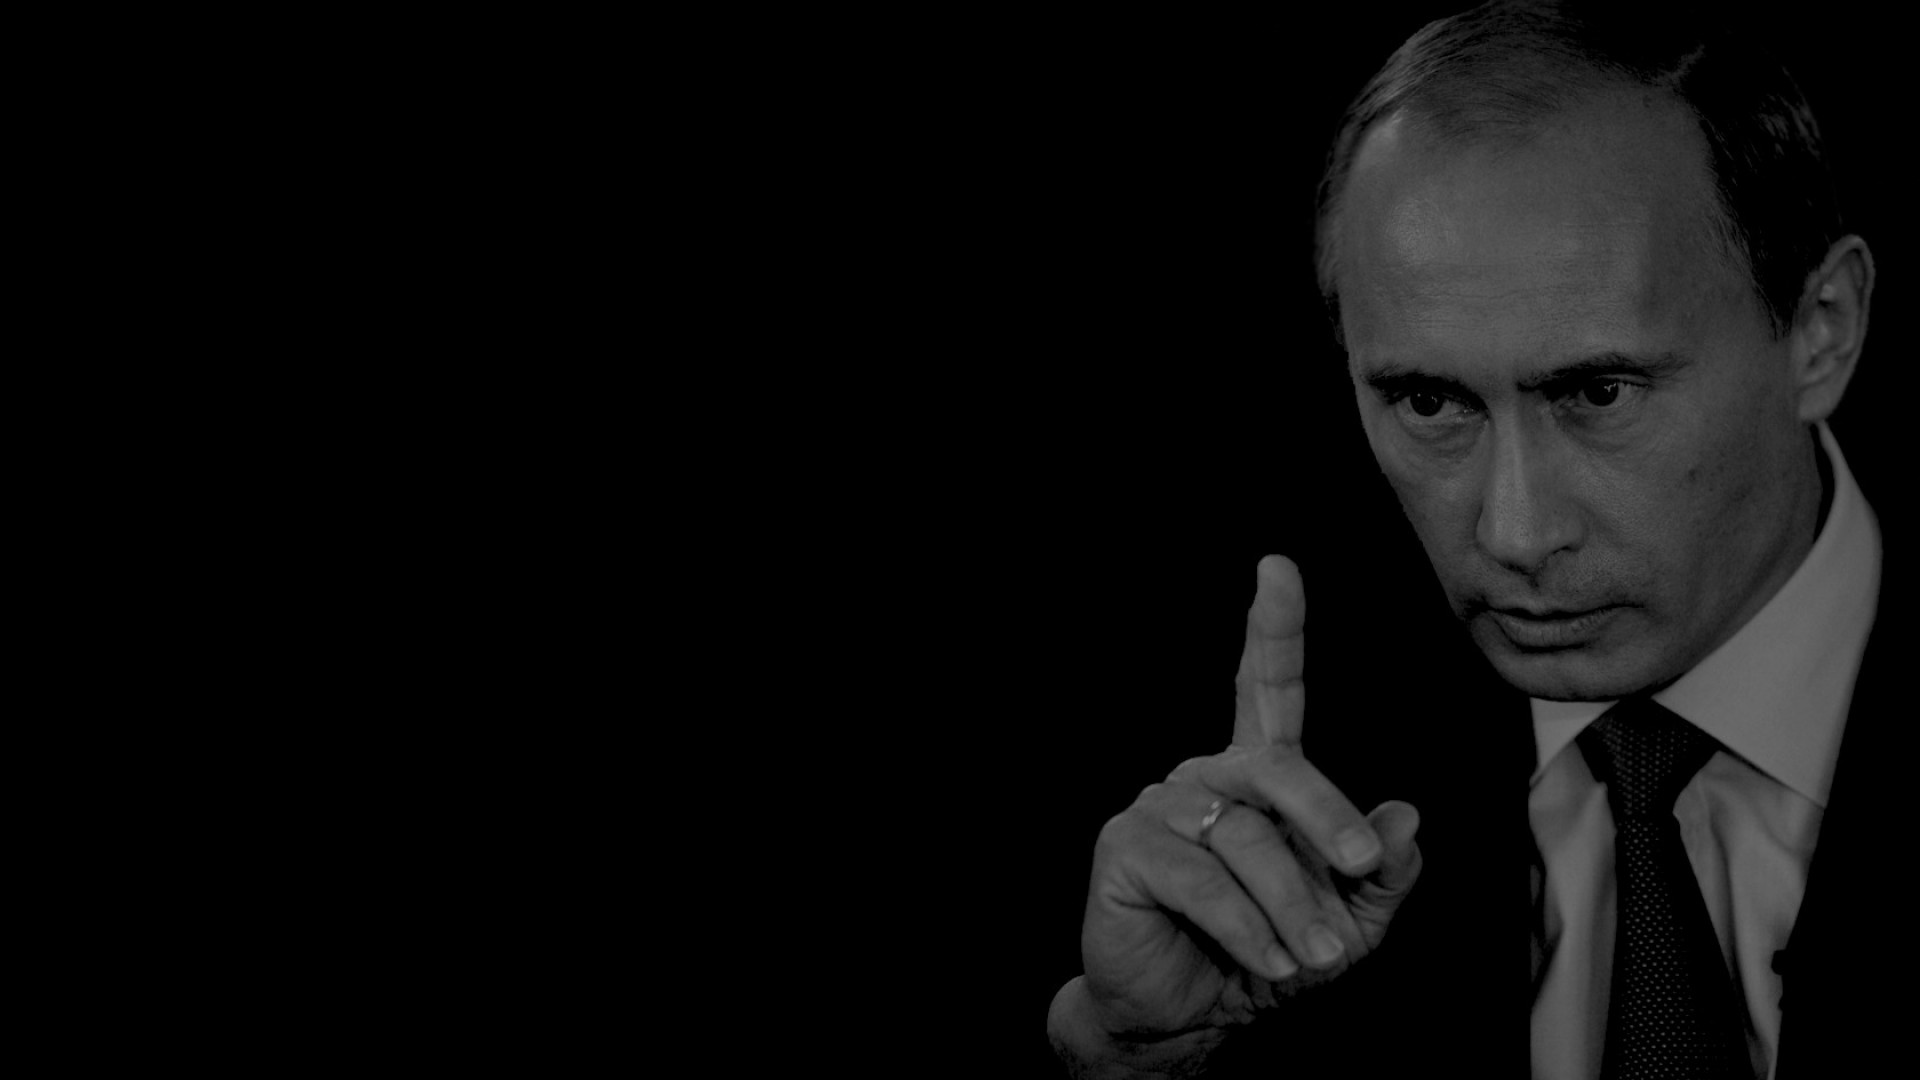 Putin Wallpapers